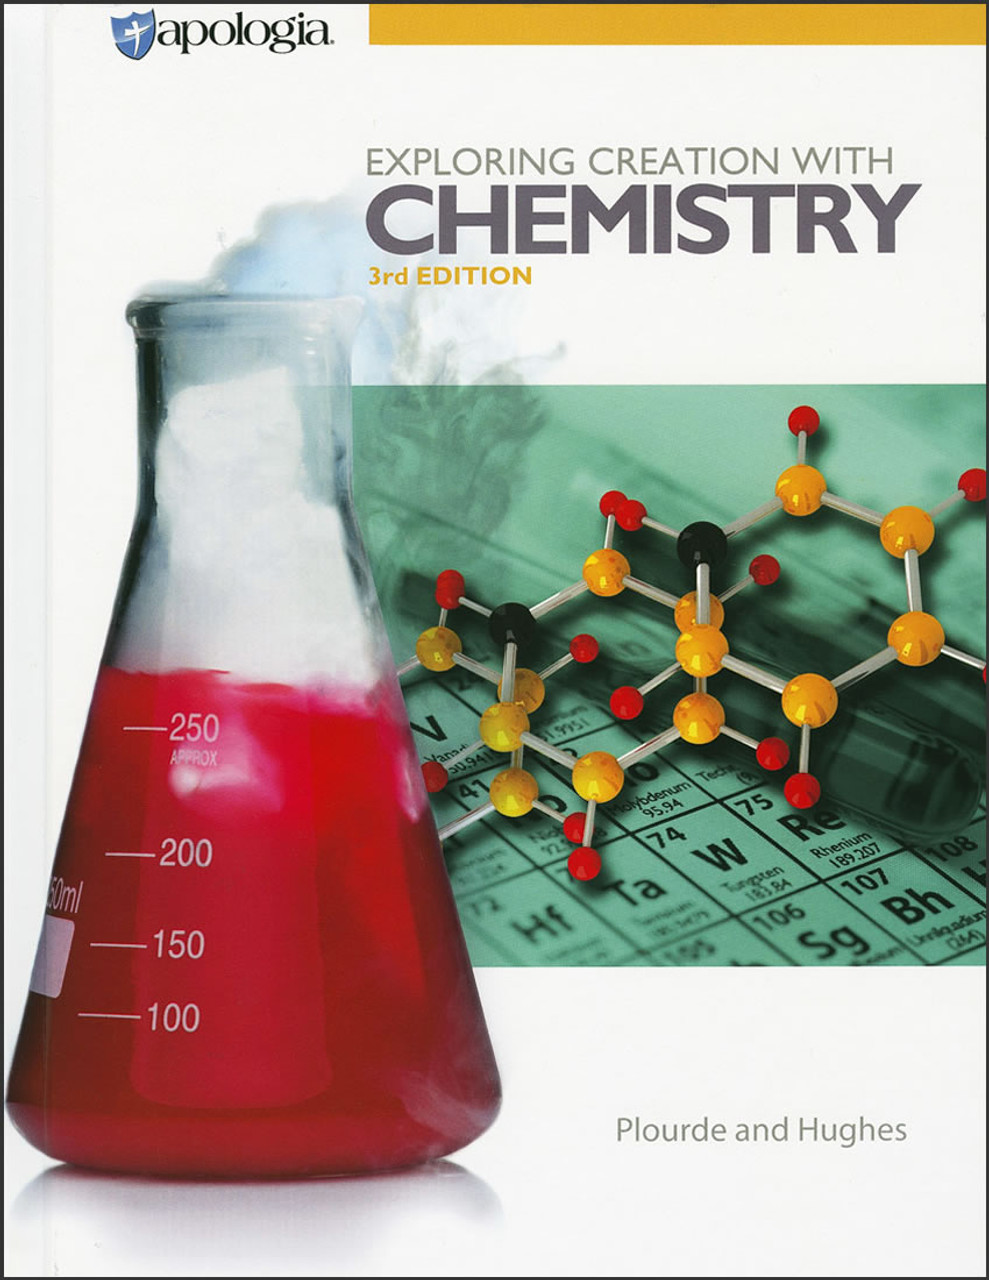 Exploring Creation with Chemistry, 3rd edition